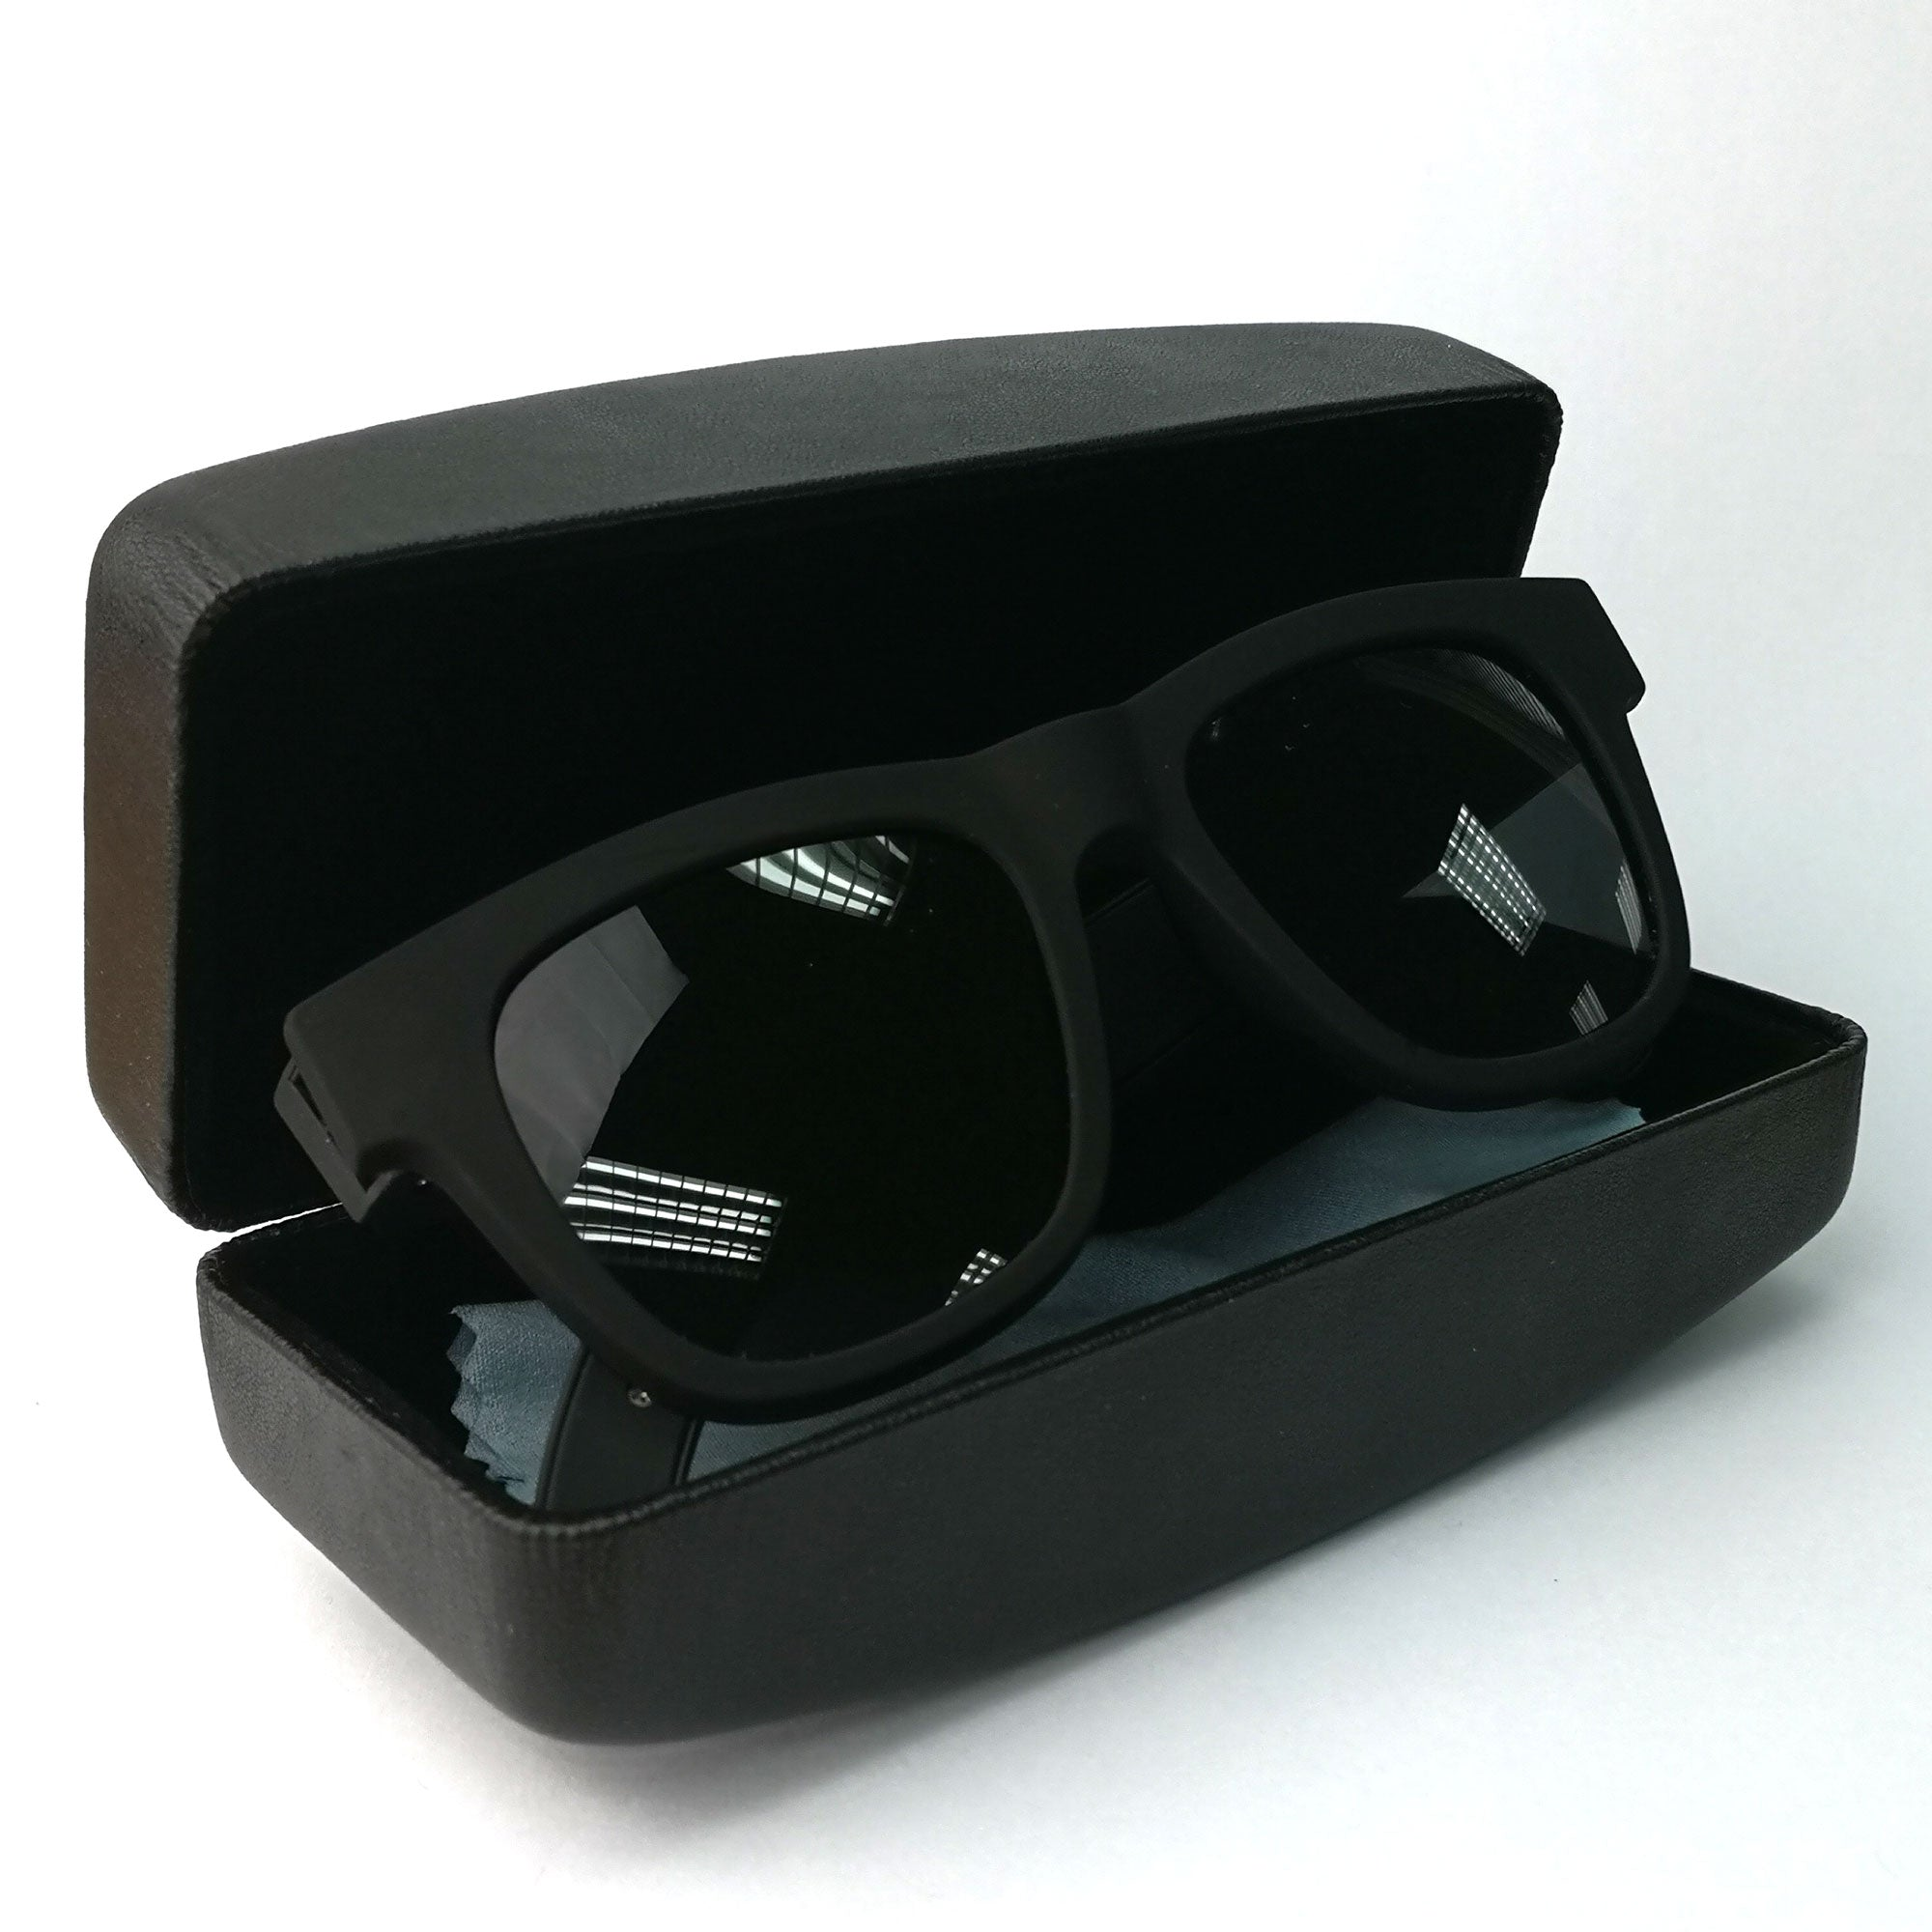 Likesonic Bone Conduction Sunglasses - Case